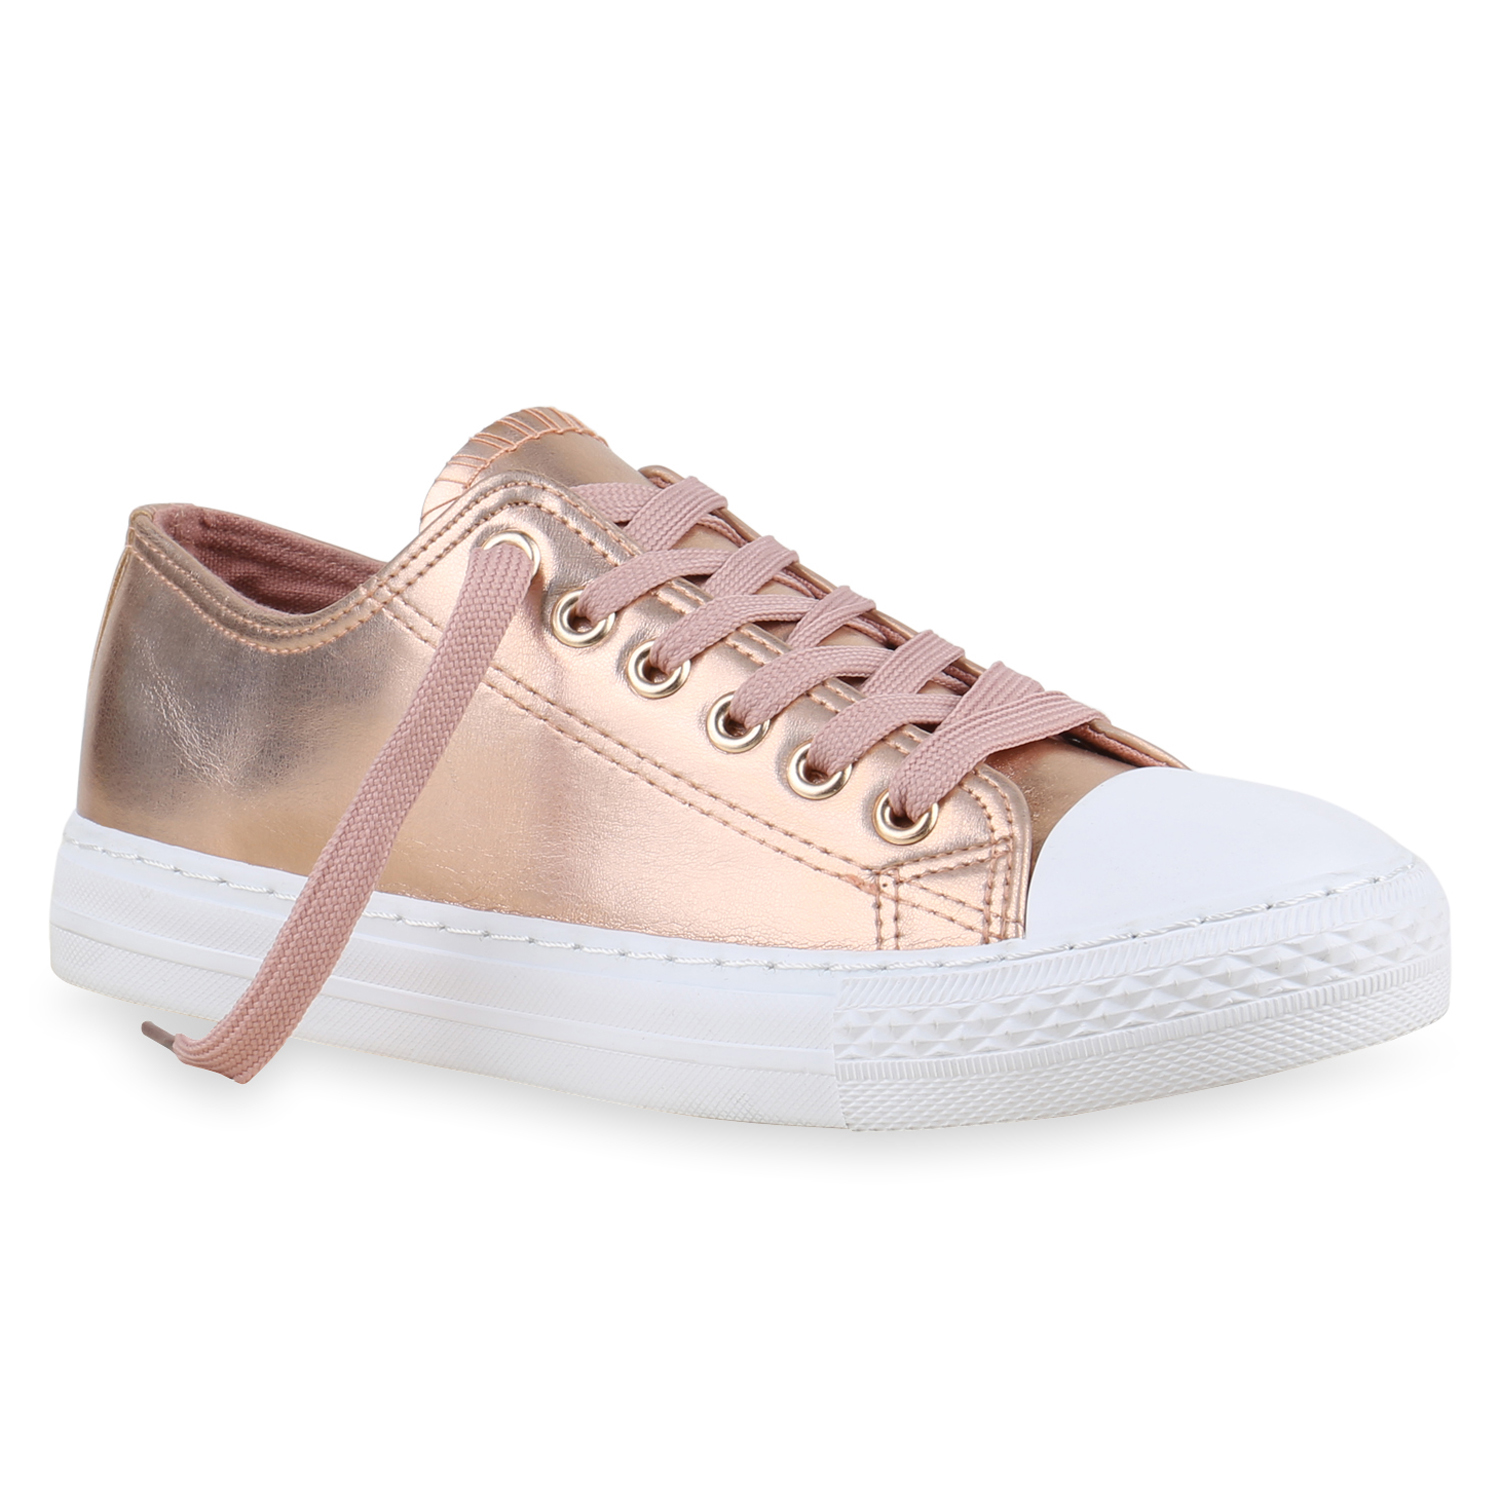 sneakers low damen metallic turnschuhe wei e sohle flats 814472 ebay